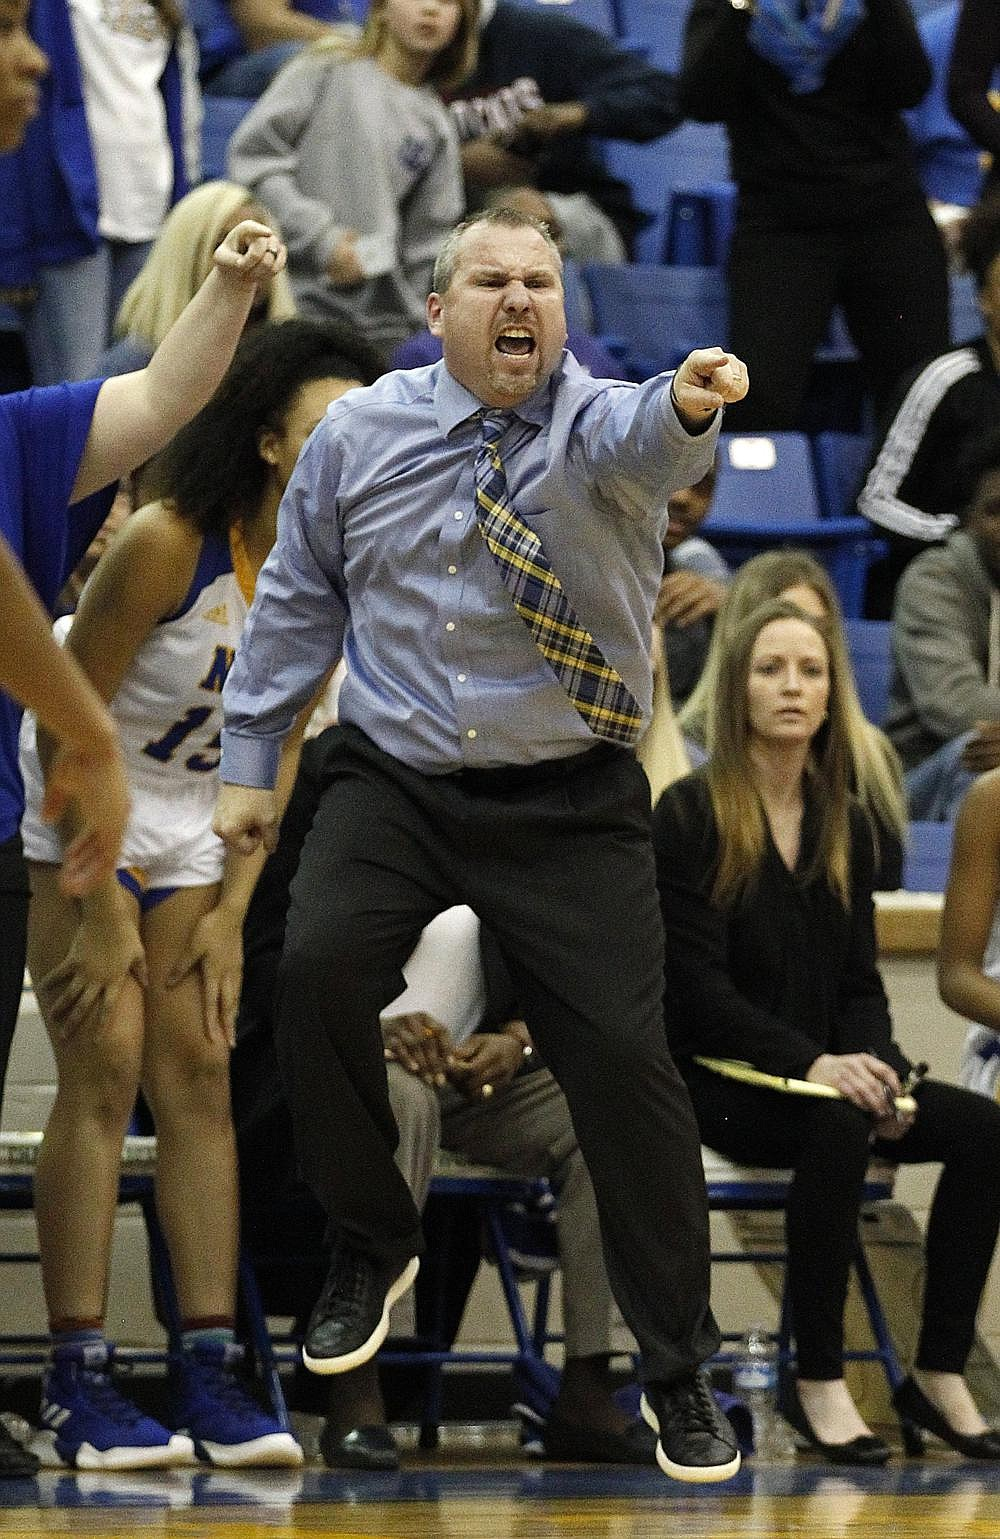 North Little Rock head coach Daryl Fimple yells to his players during the fourth quarter of the Charging Wildcats' 70-64 win on Friday, Feb. 15, 2019, at North Little Rock High School.  (Arkansas Democrat-Gazette/THOMAS METTHE)